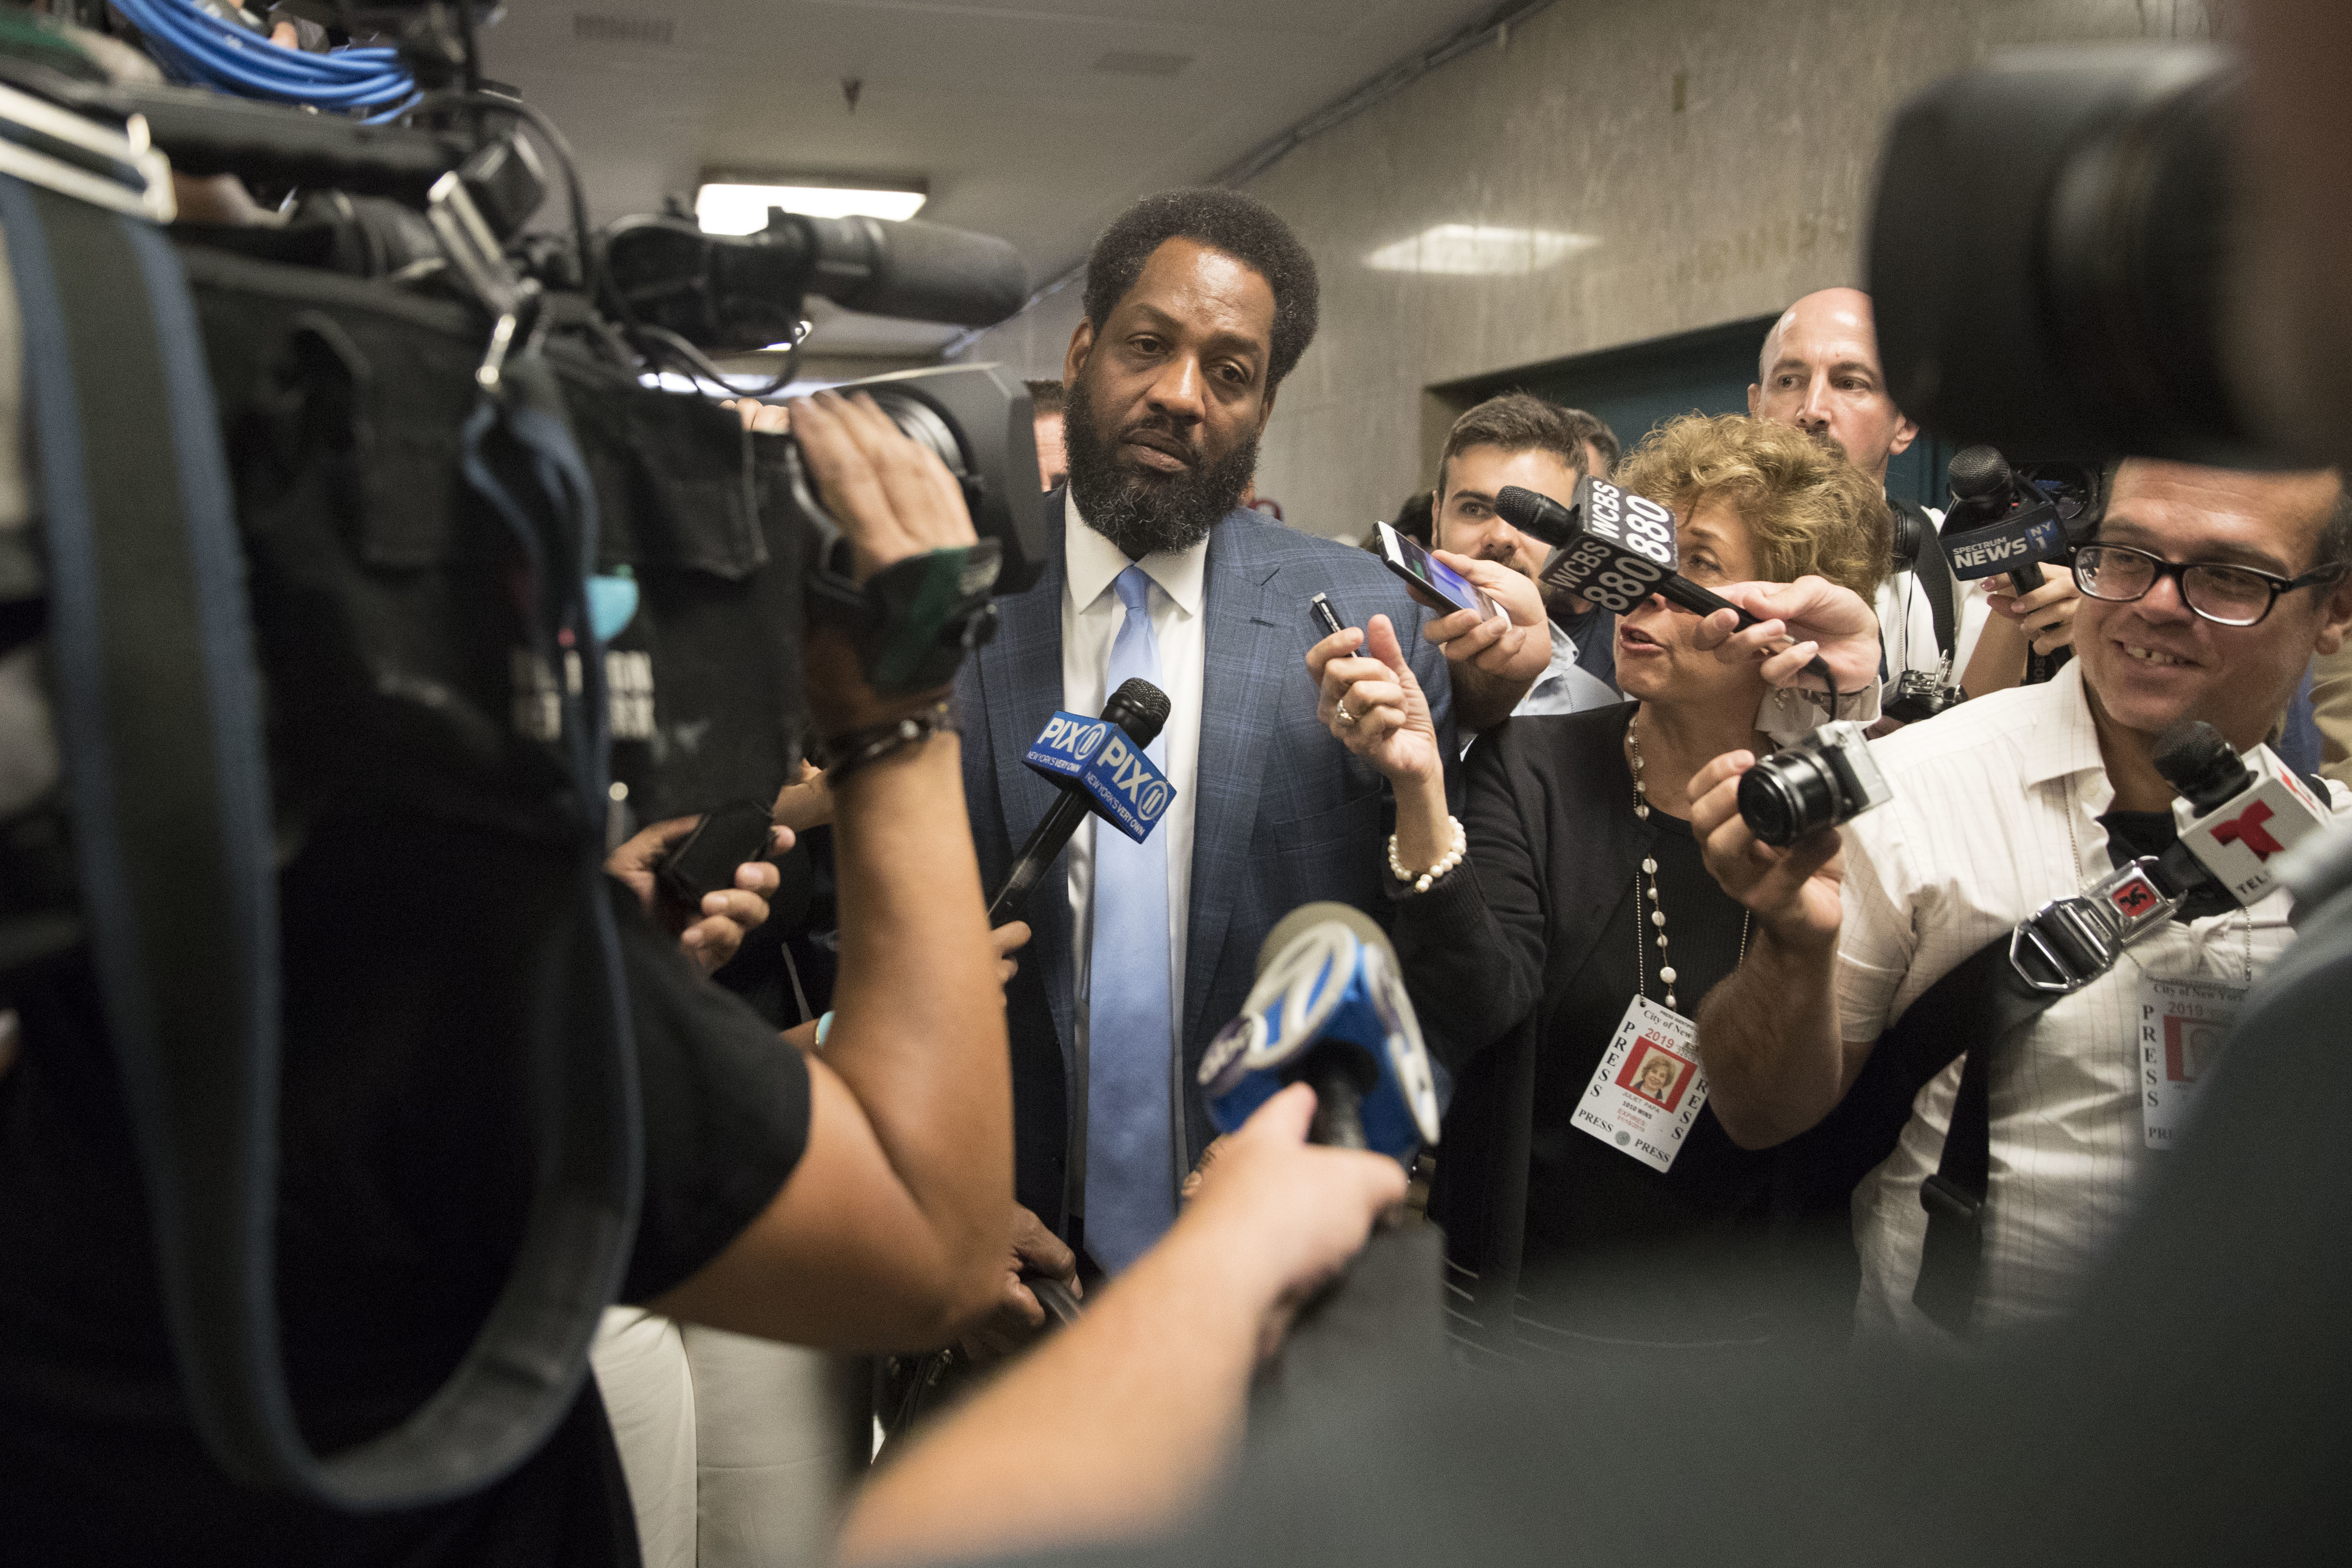 <div class='meta'><div class='origin-logo' data-origin='AP'></div><span class='caption-text' data-credit='AP Photo/Mary Altaffer'>Attorney Norman Williams is surrounded by reporters after the arraignment of his client, James Currie, in Manhattan criminal court, Friday, Aug. 10, 2018, in New York.</span></div>